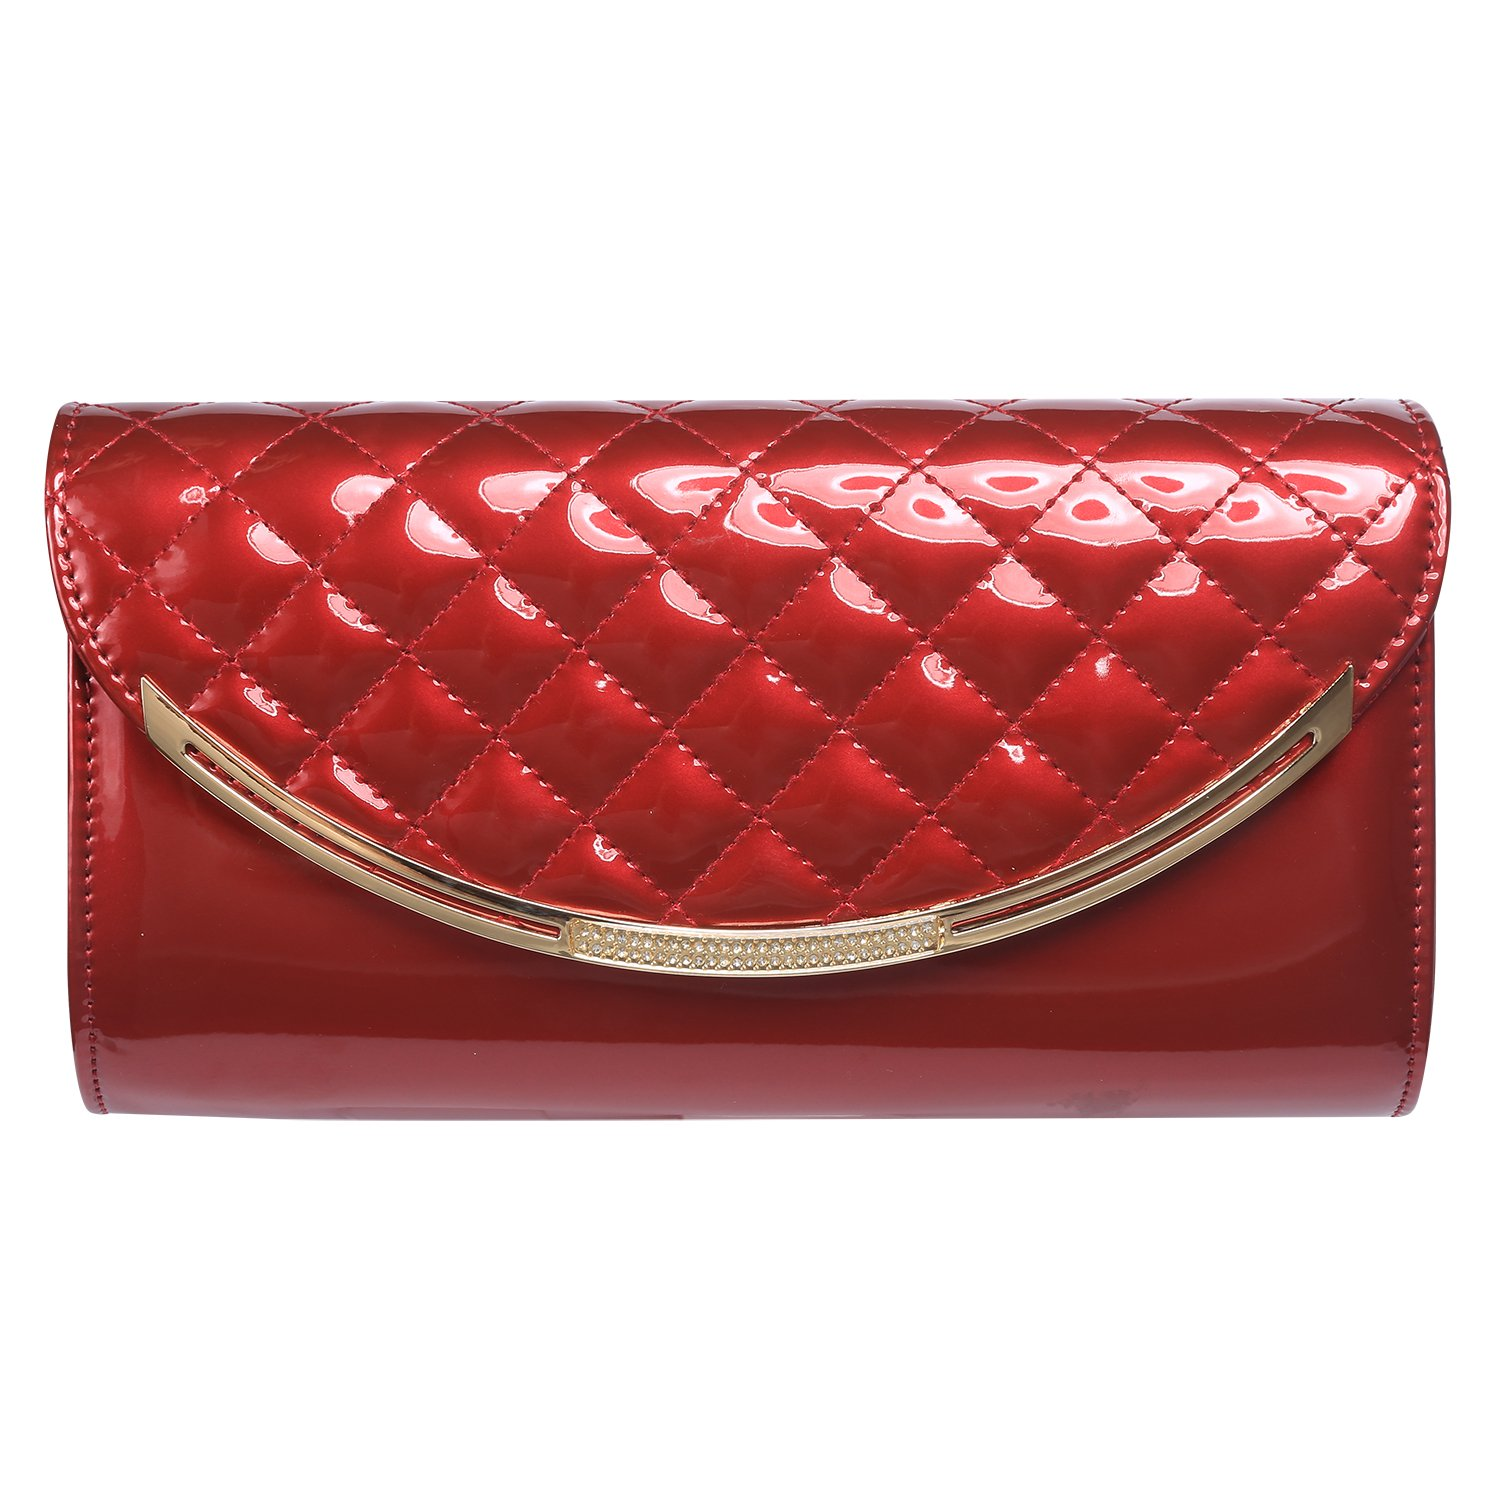 Womens Faux Patent Leather Clutch Handbag Evening Bag Shoulder Bag For Wedding and Party,Wine Red